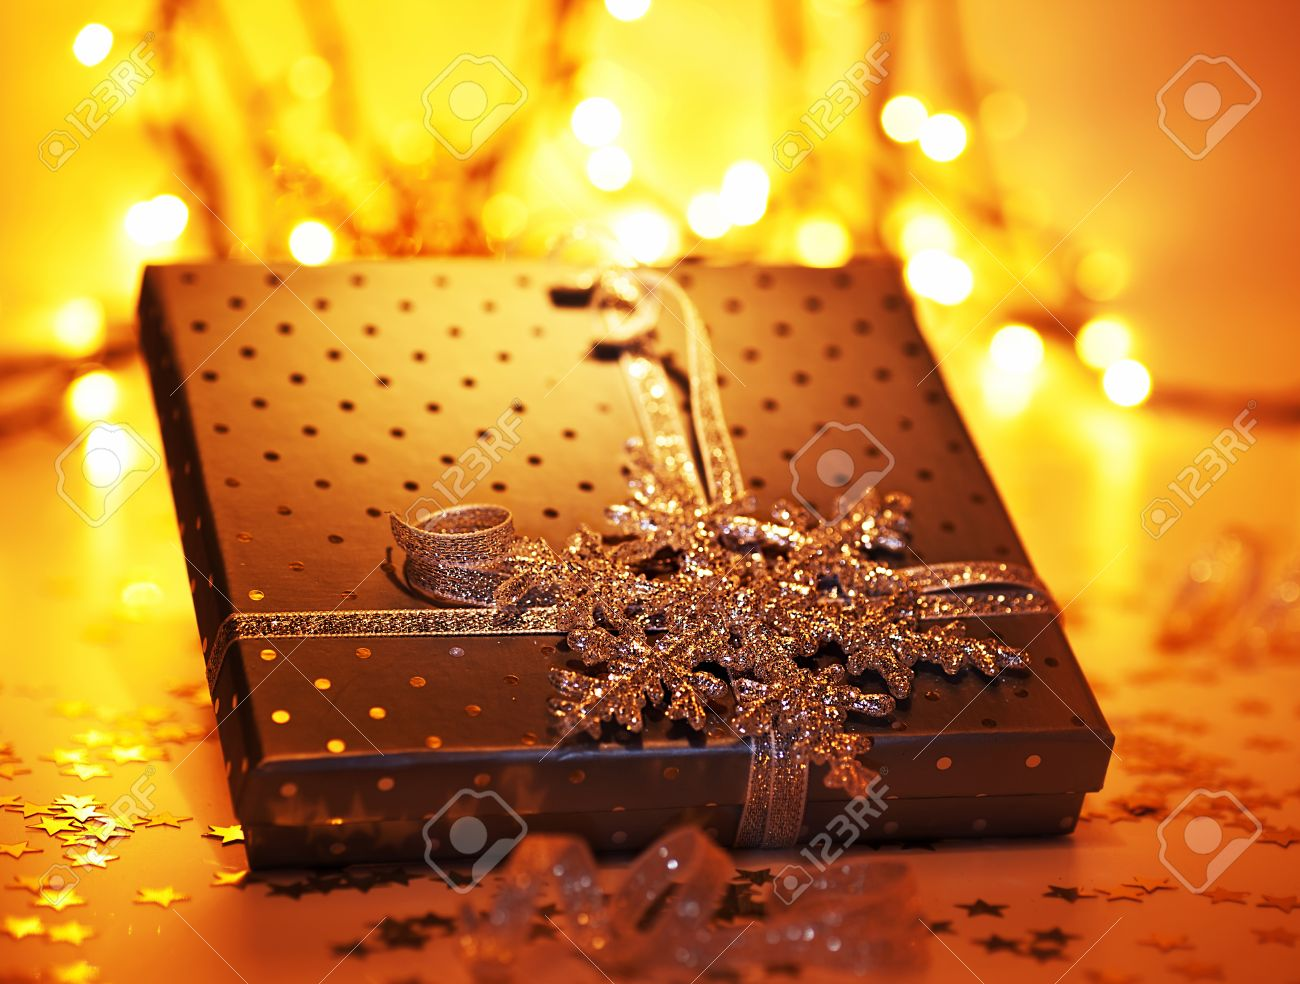 Golden gift box, Christmas ornament and winter holidays decoration over blur bokeh tree lights, festive pesent with snowflake, warm yellow glowing background Stock Photo - 11600325